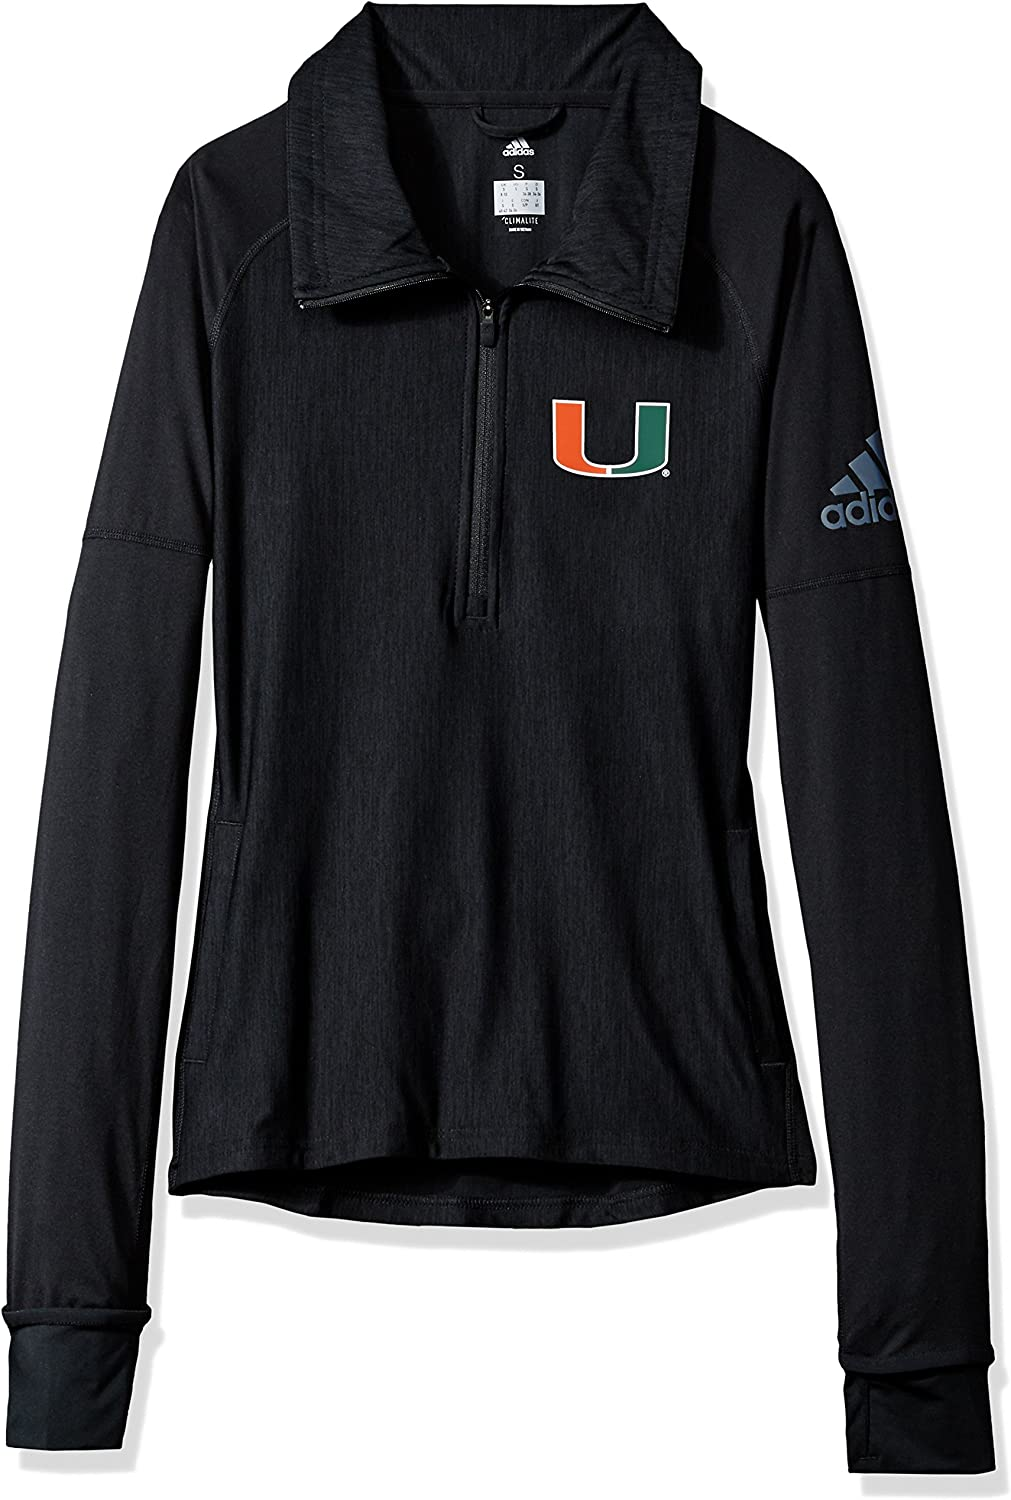 It is very popular Max 74% OFF adidas Team Logo Vertical Heather Pullover 1 Zip 4